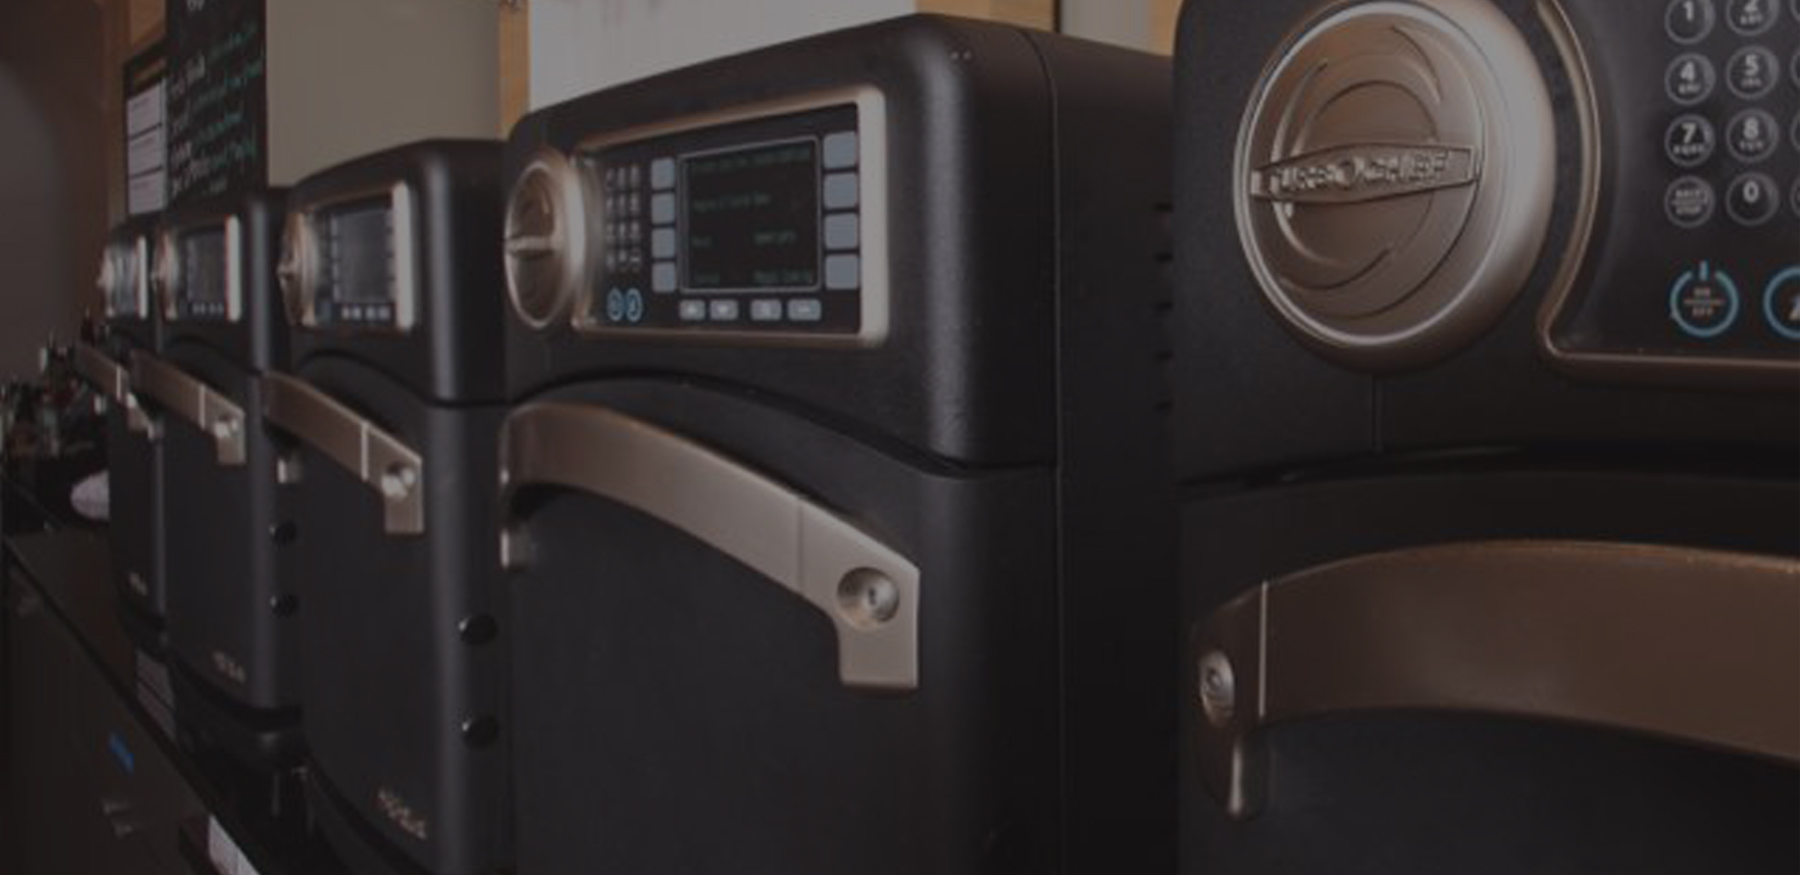 The World's Fastest Ovens | TurboChef as Technologies